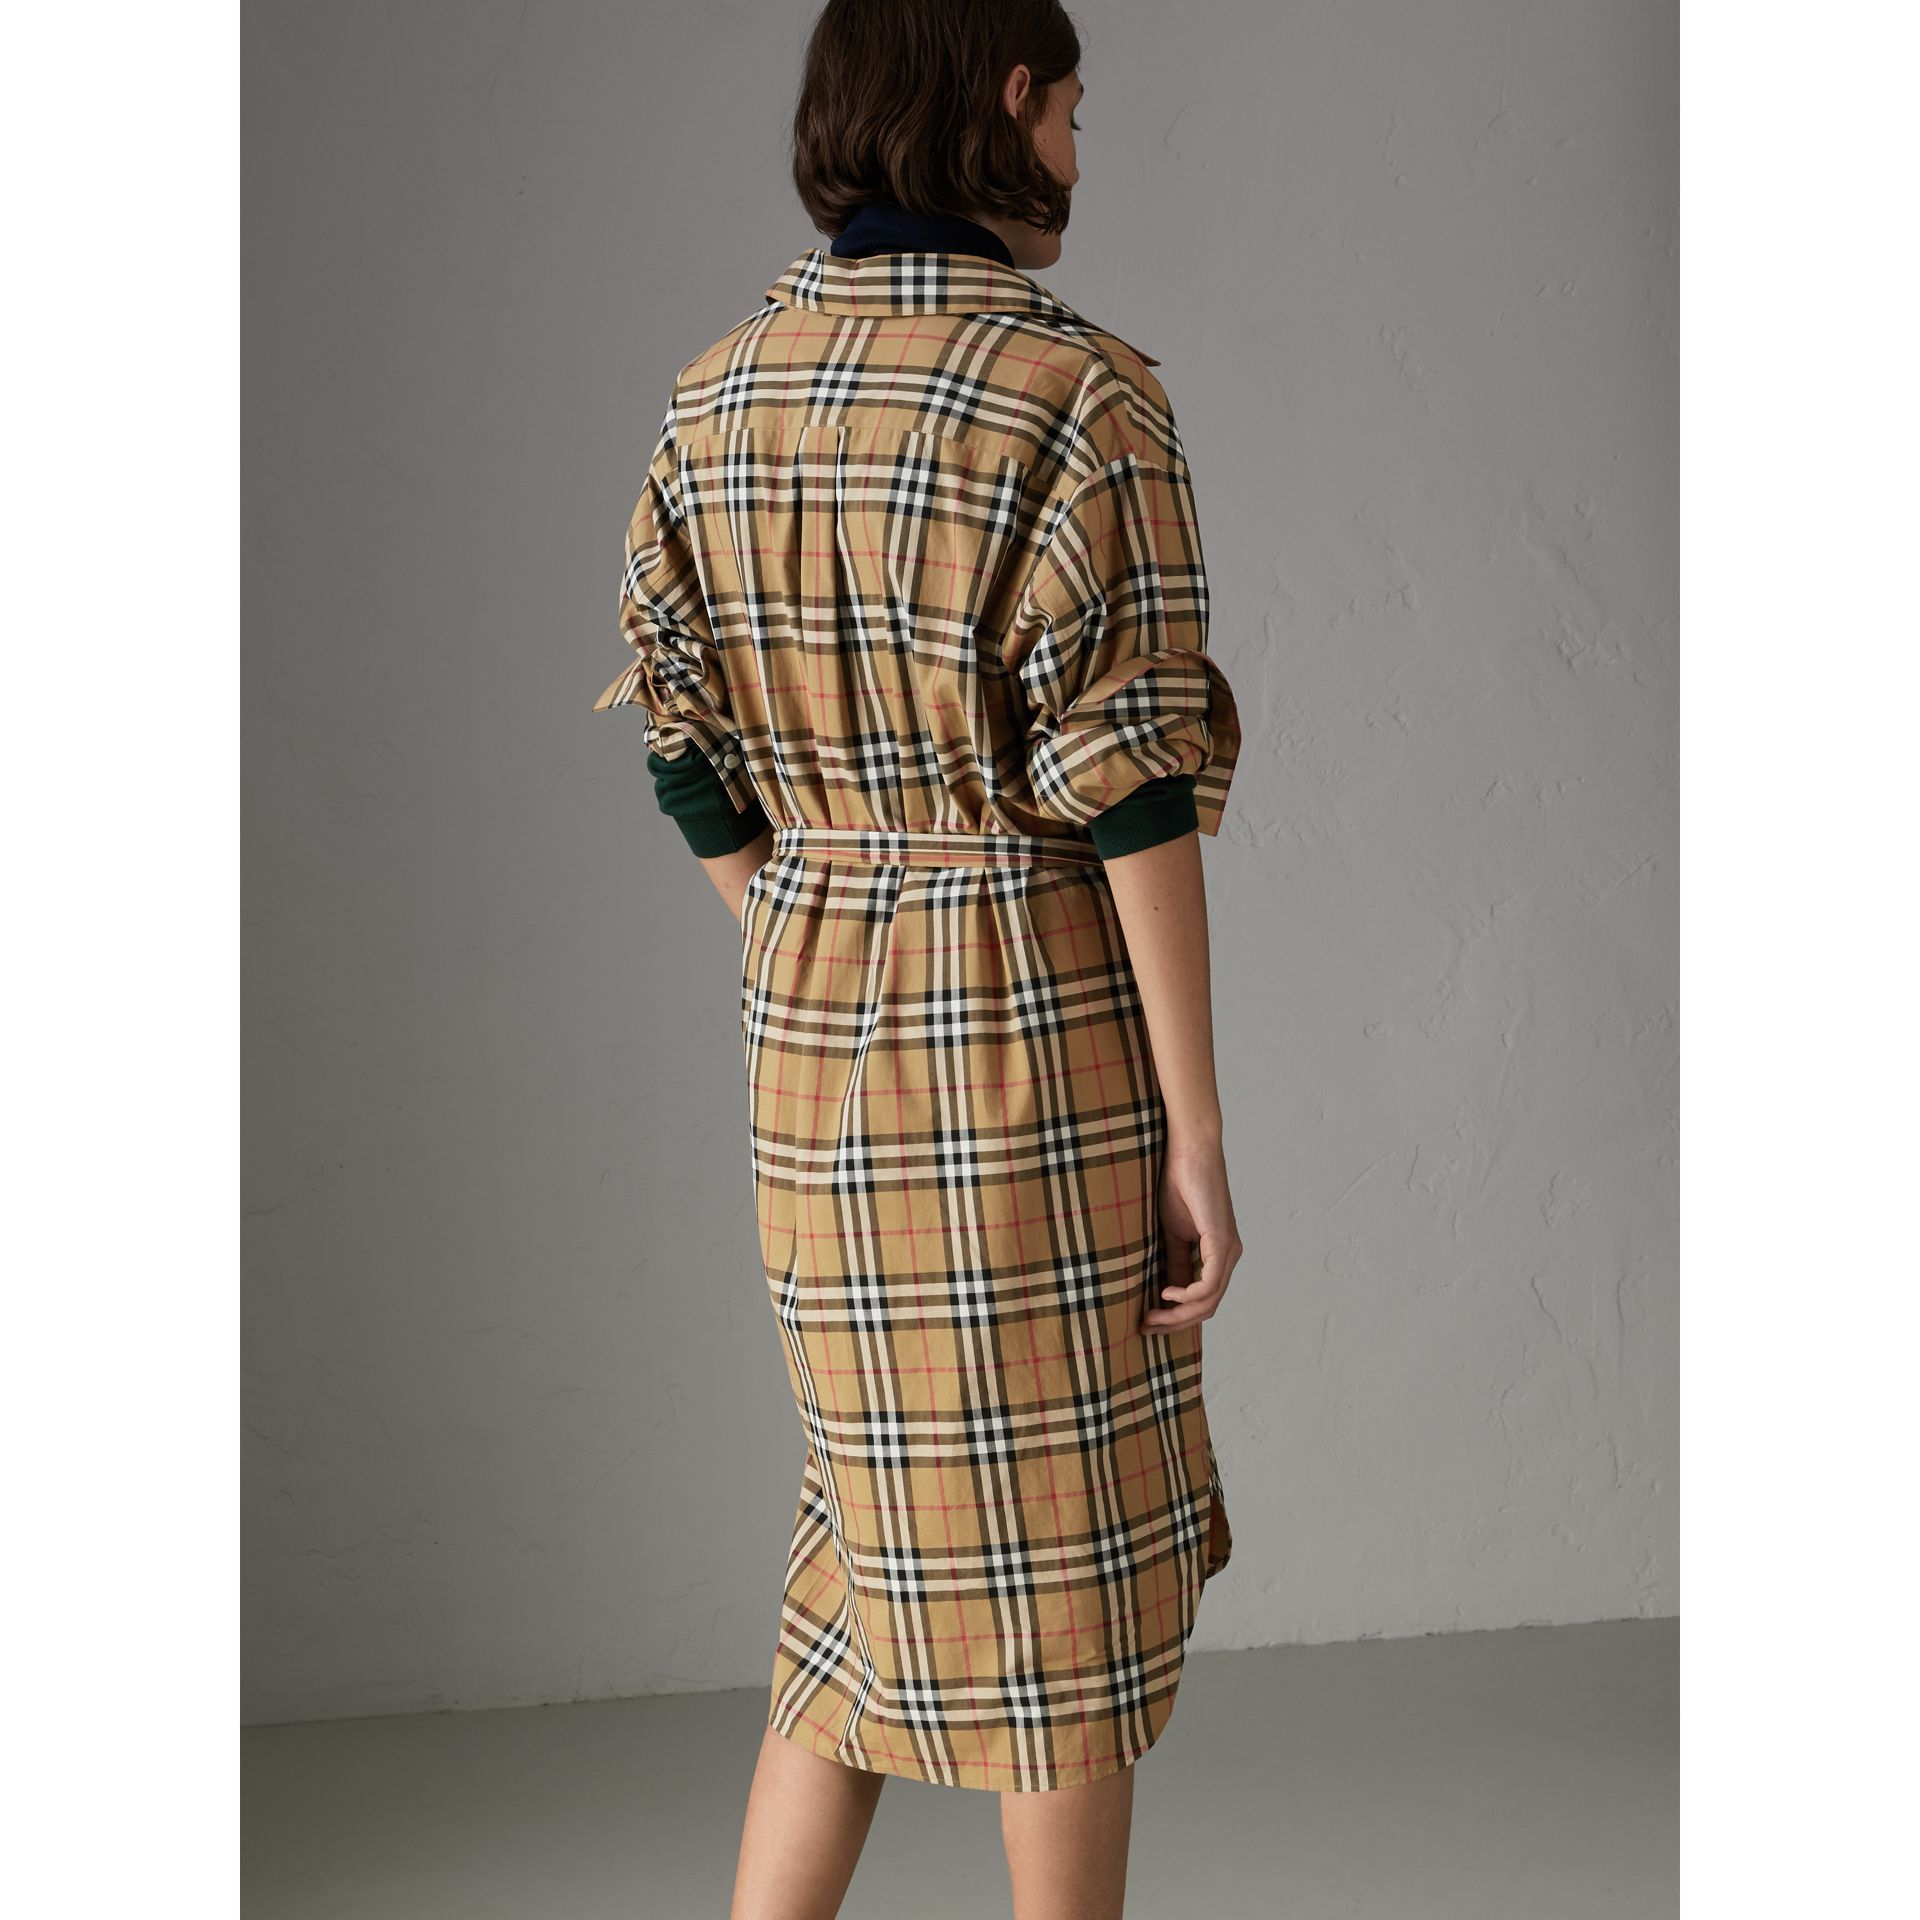 Tie-waist Vintage Check Cotton Shirt Dress in Antique Yellow - Women | Burberry United States - gallery image 2